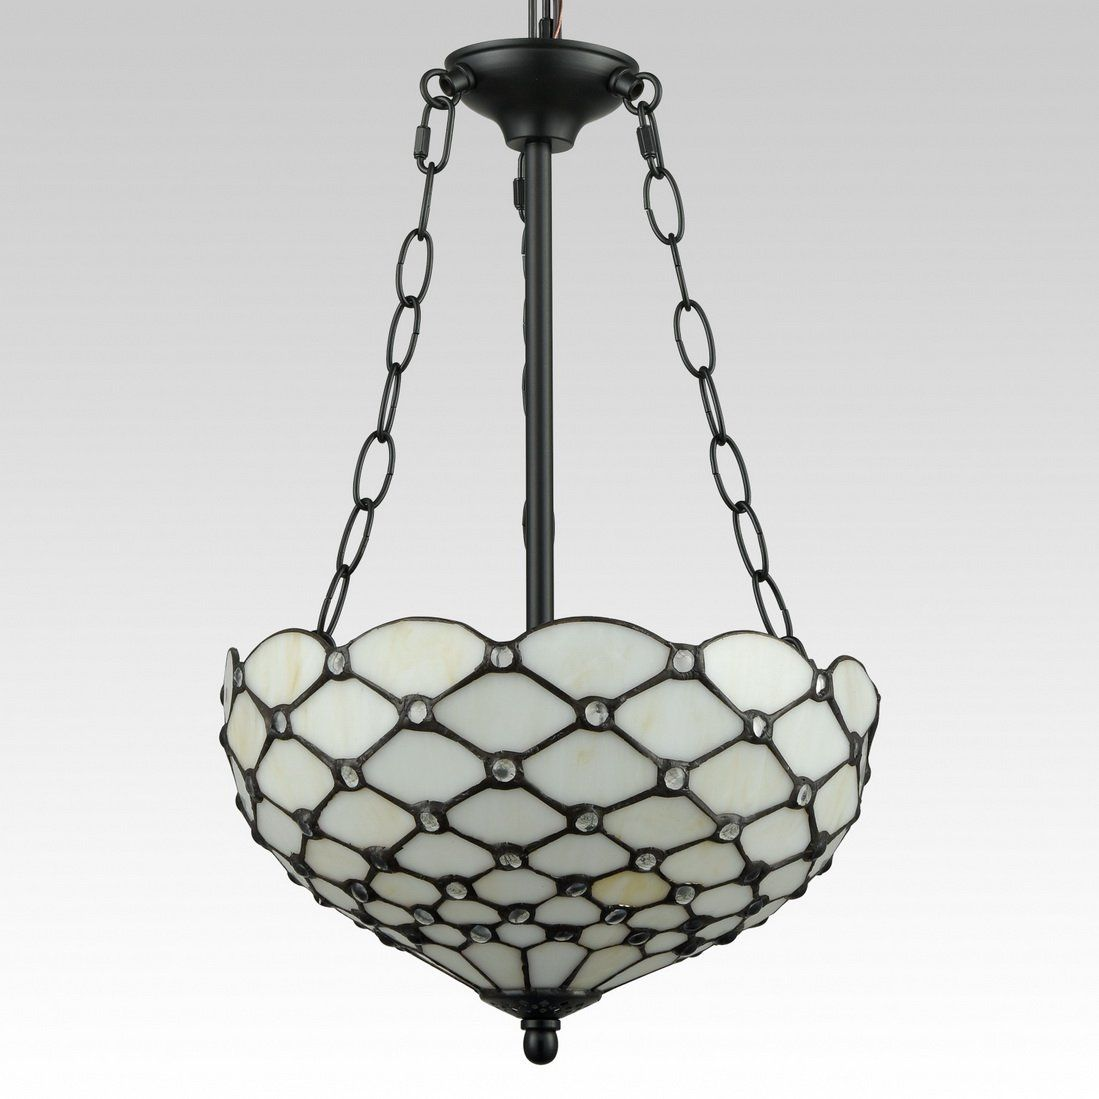 Eul Tiffany Style Pendant Light Fixtures Antique Brass And